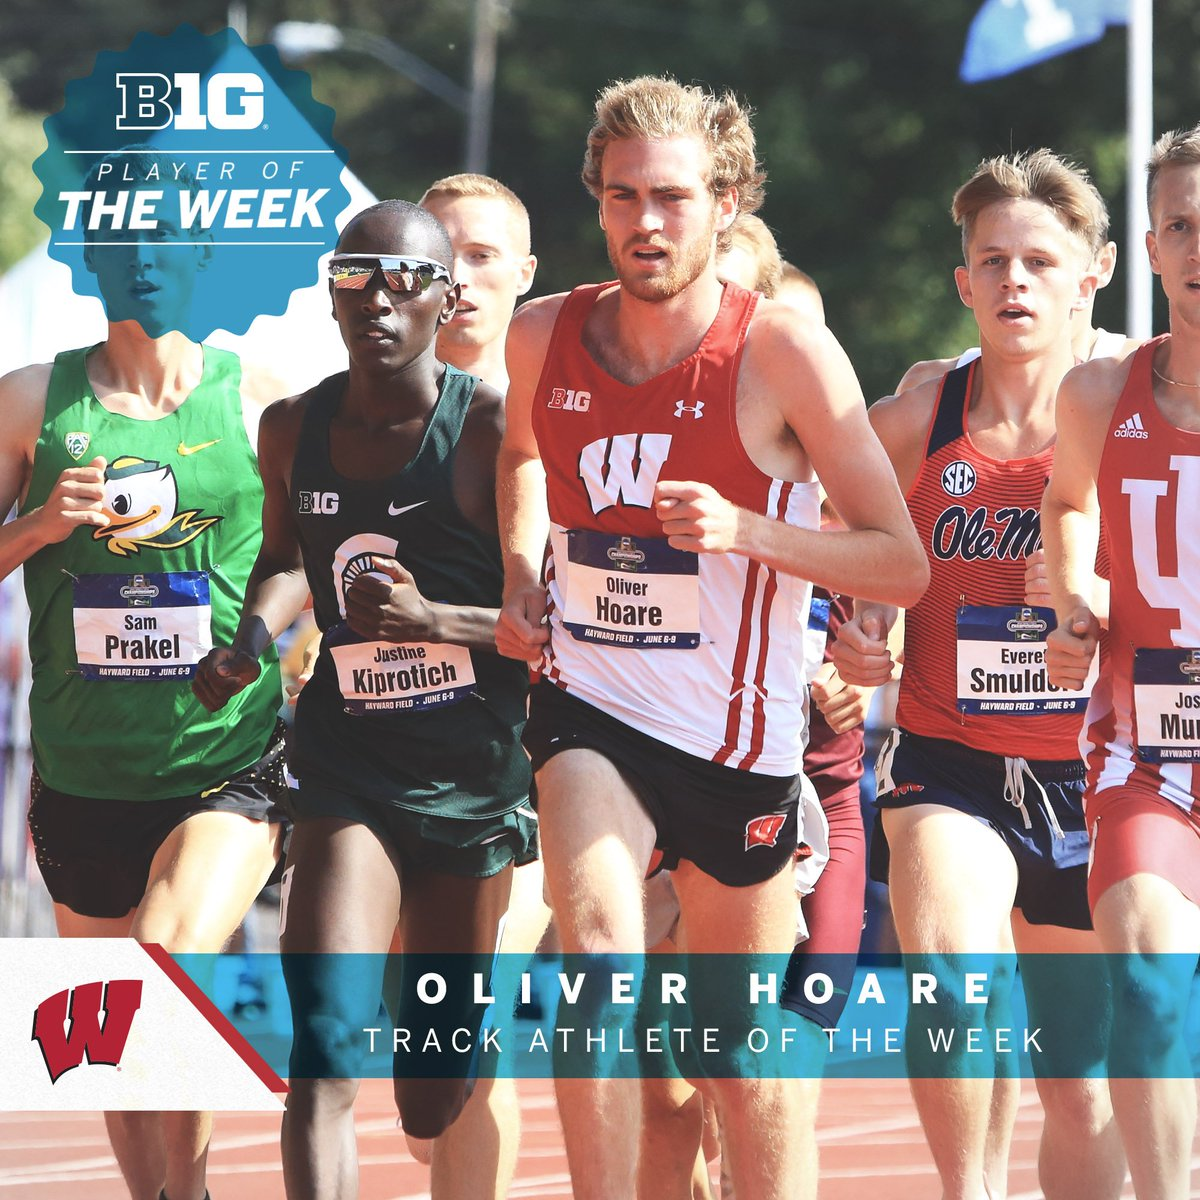 Oliver Hoare of @BadgerTrackXC set a world-leading time in the 1,500-meter run (3:37.20) at the Bryan Clay Invitational last weekend, earning #B1GTF Outdoor Track Athlete of the Week honors